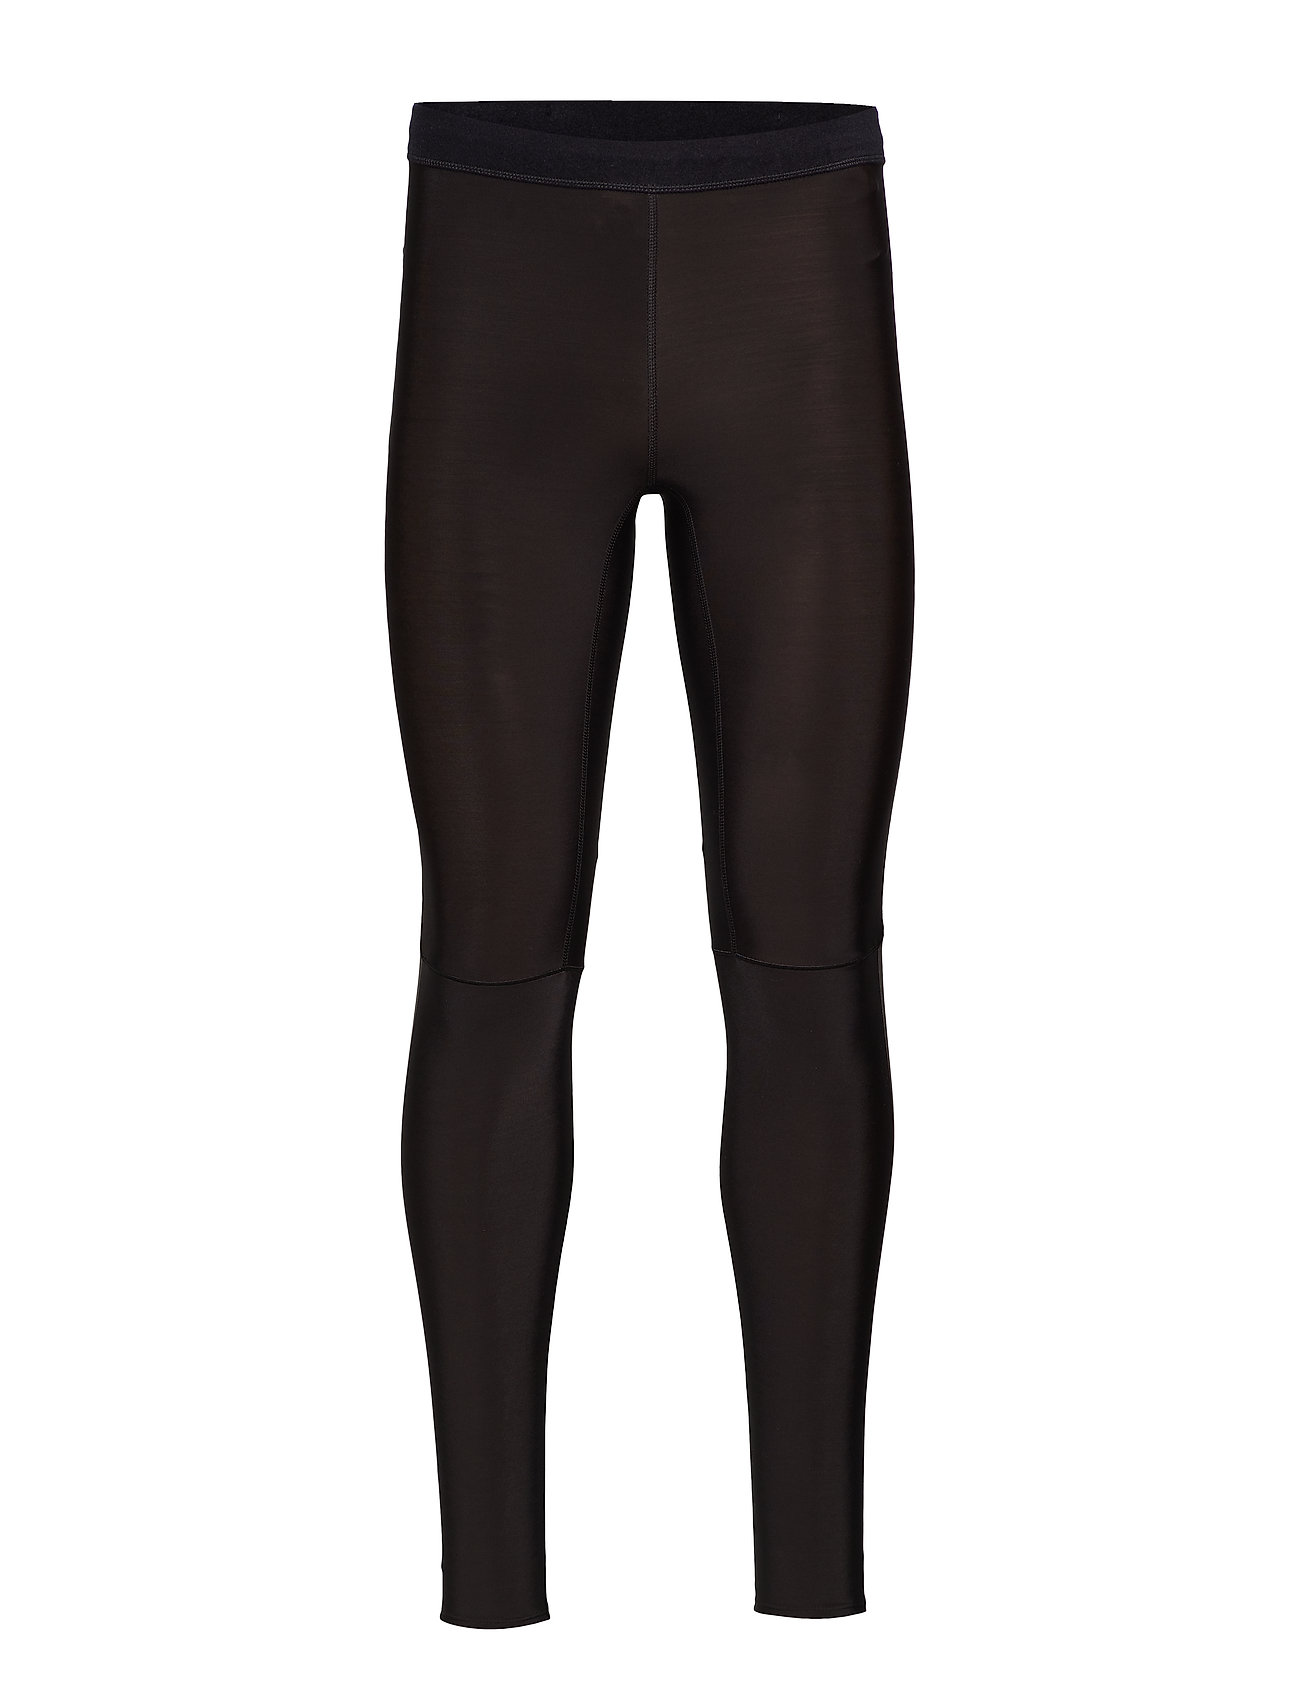 adidas Performance SUPERNOVA TIGHT - BLACK